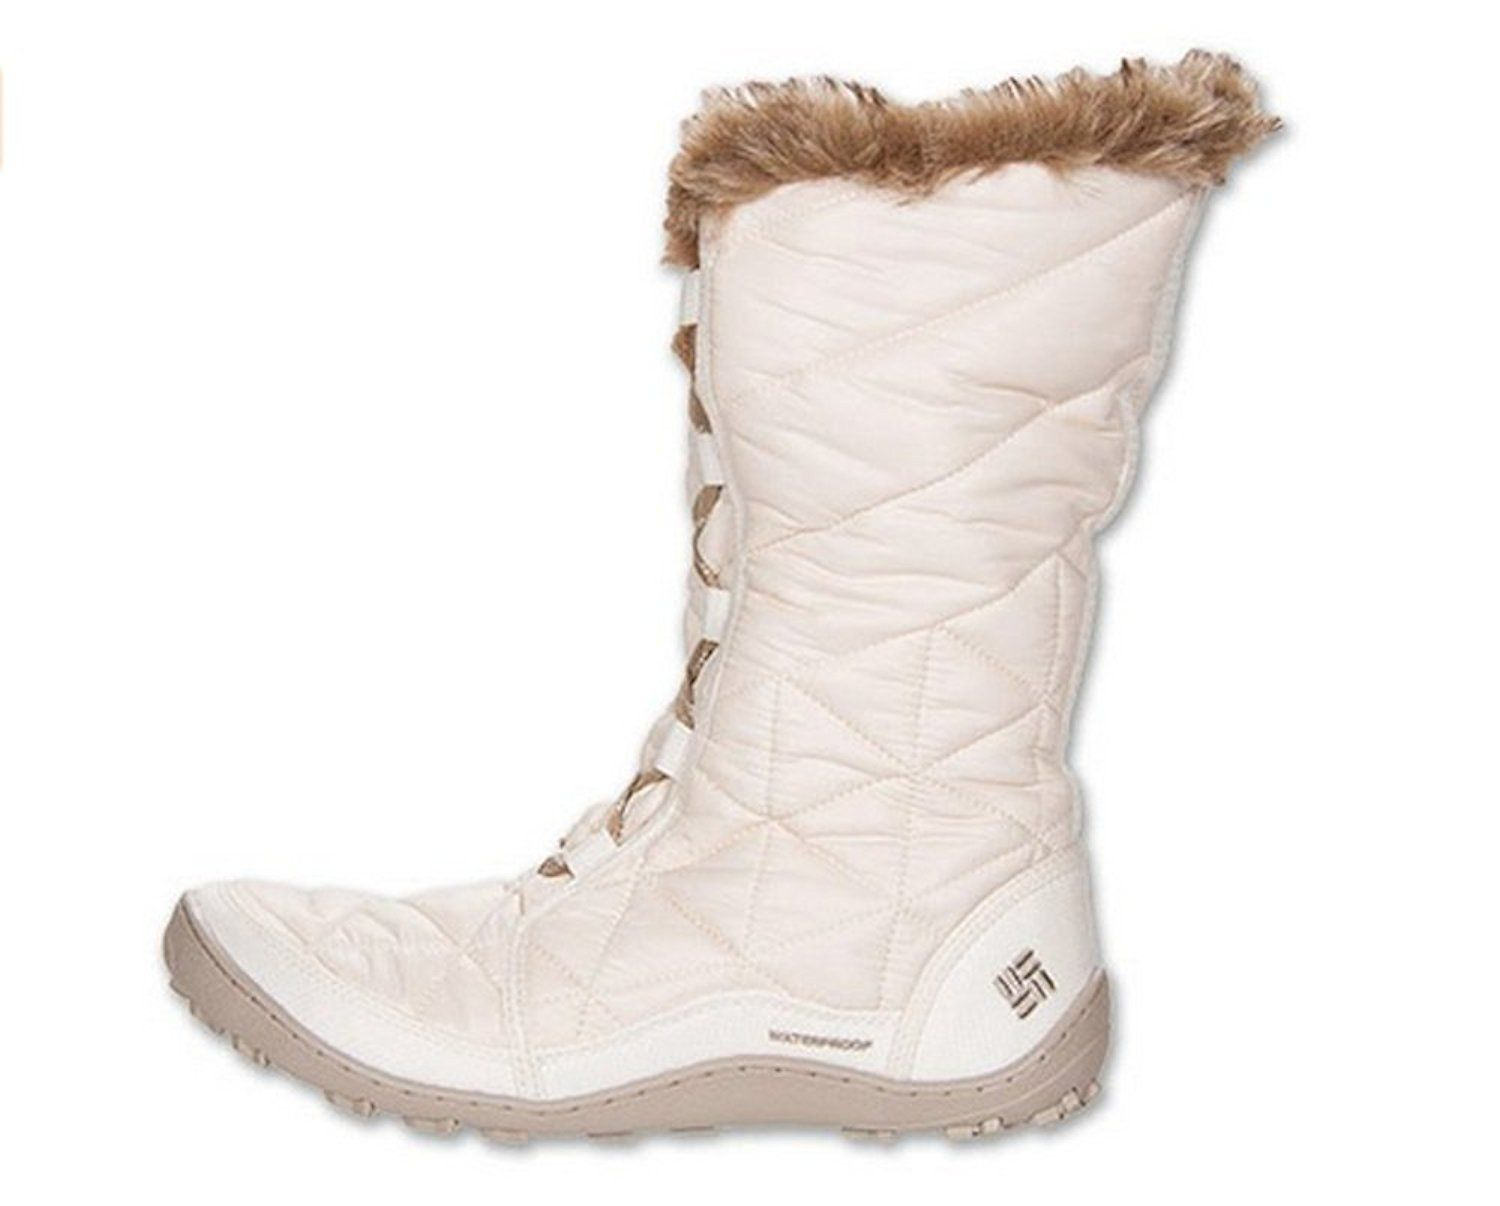 Men/'s Waterproof Snow Boots Women Casual Ankle Shoes Winter Faux Fur Lined Boots